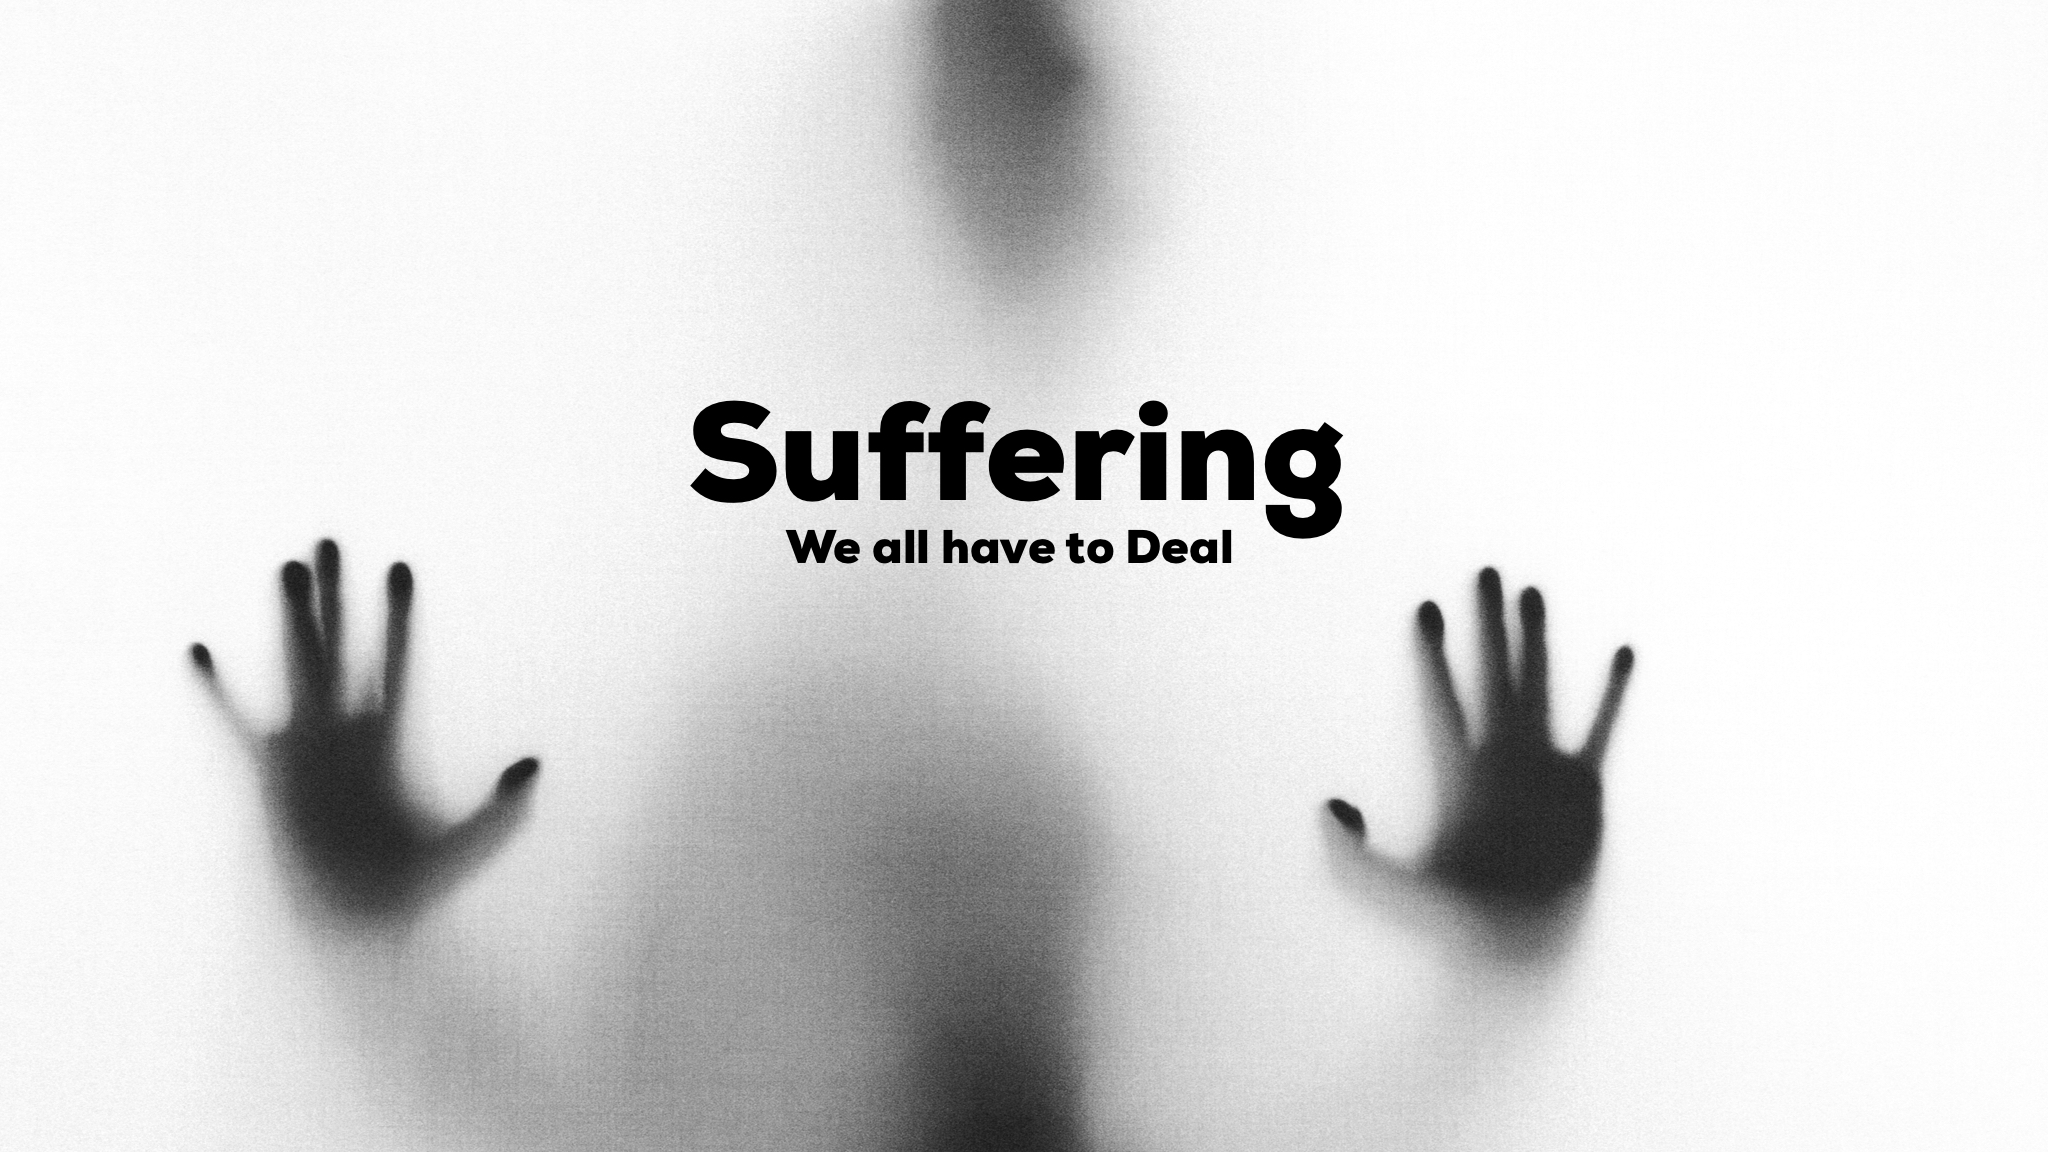 Reid and Jesse discuss the reality of suffering, how all people have to deal with this and how Jesus unites God, Humanity in and through suffering.